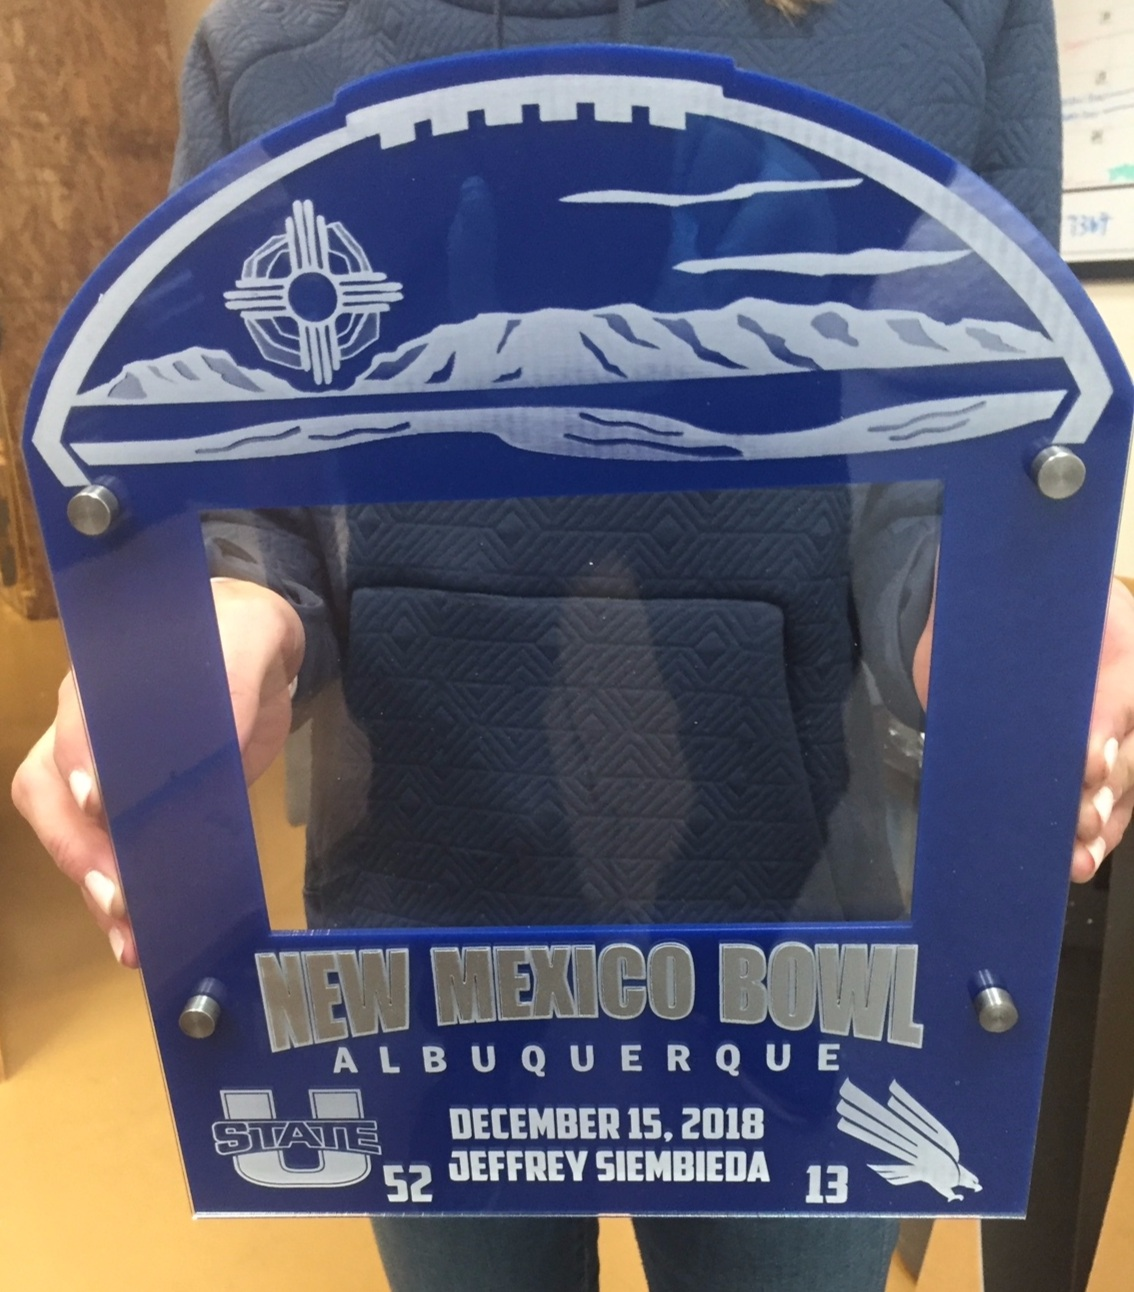 5x7 landscape New Mexico Bowl photo frame - 4-layer acrylic, event/team colors, upper half custom fabricated and etched to resemble football  Contact us for pricing information.